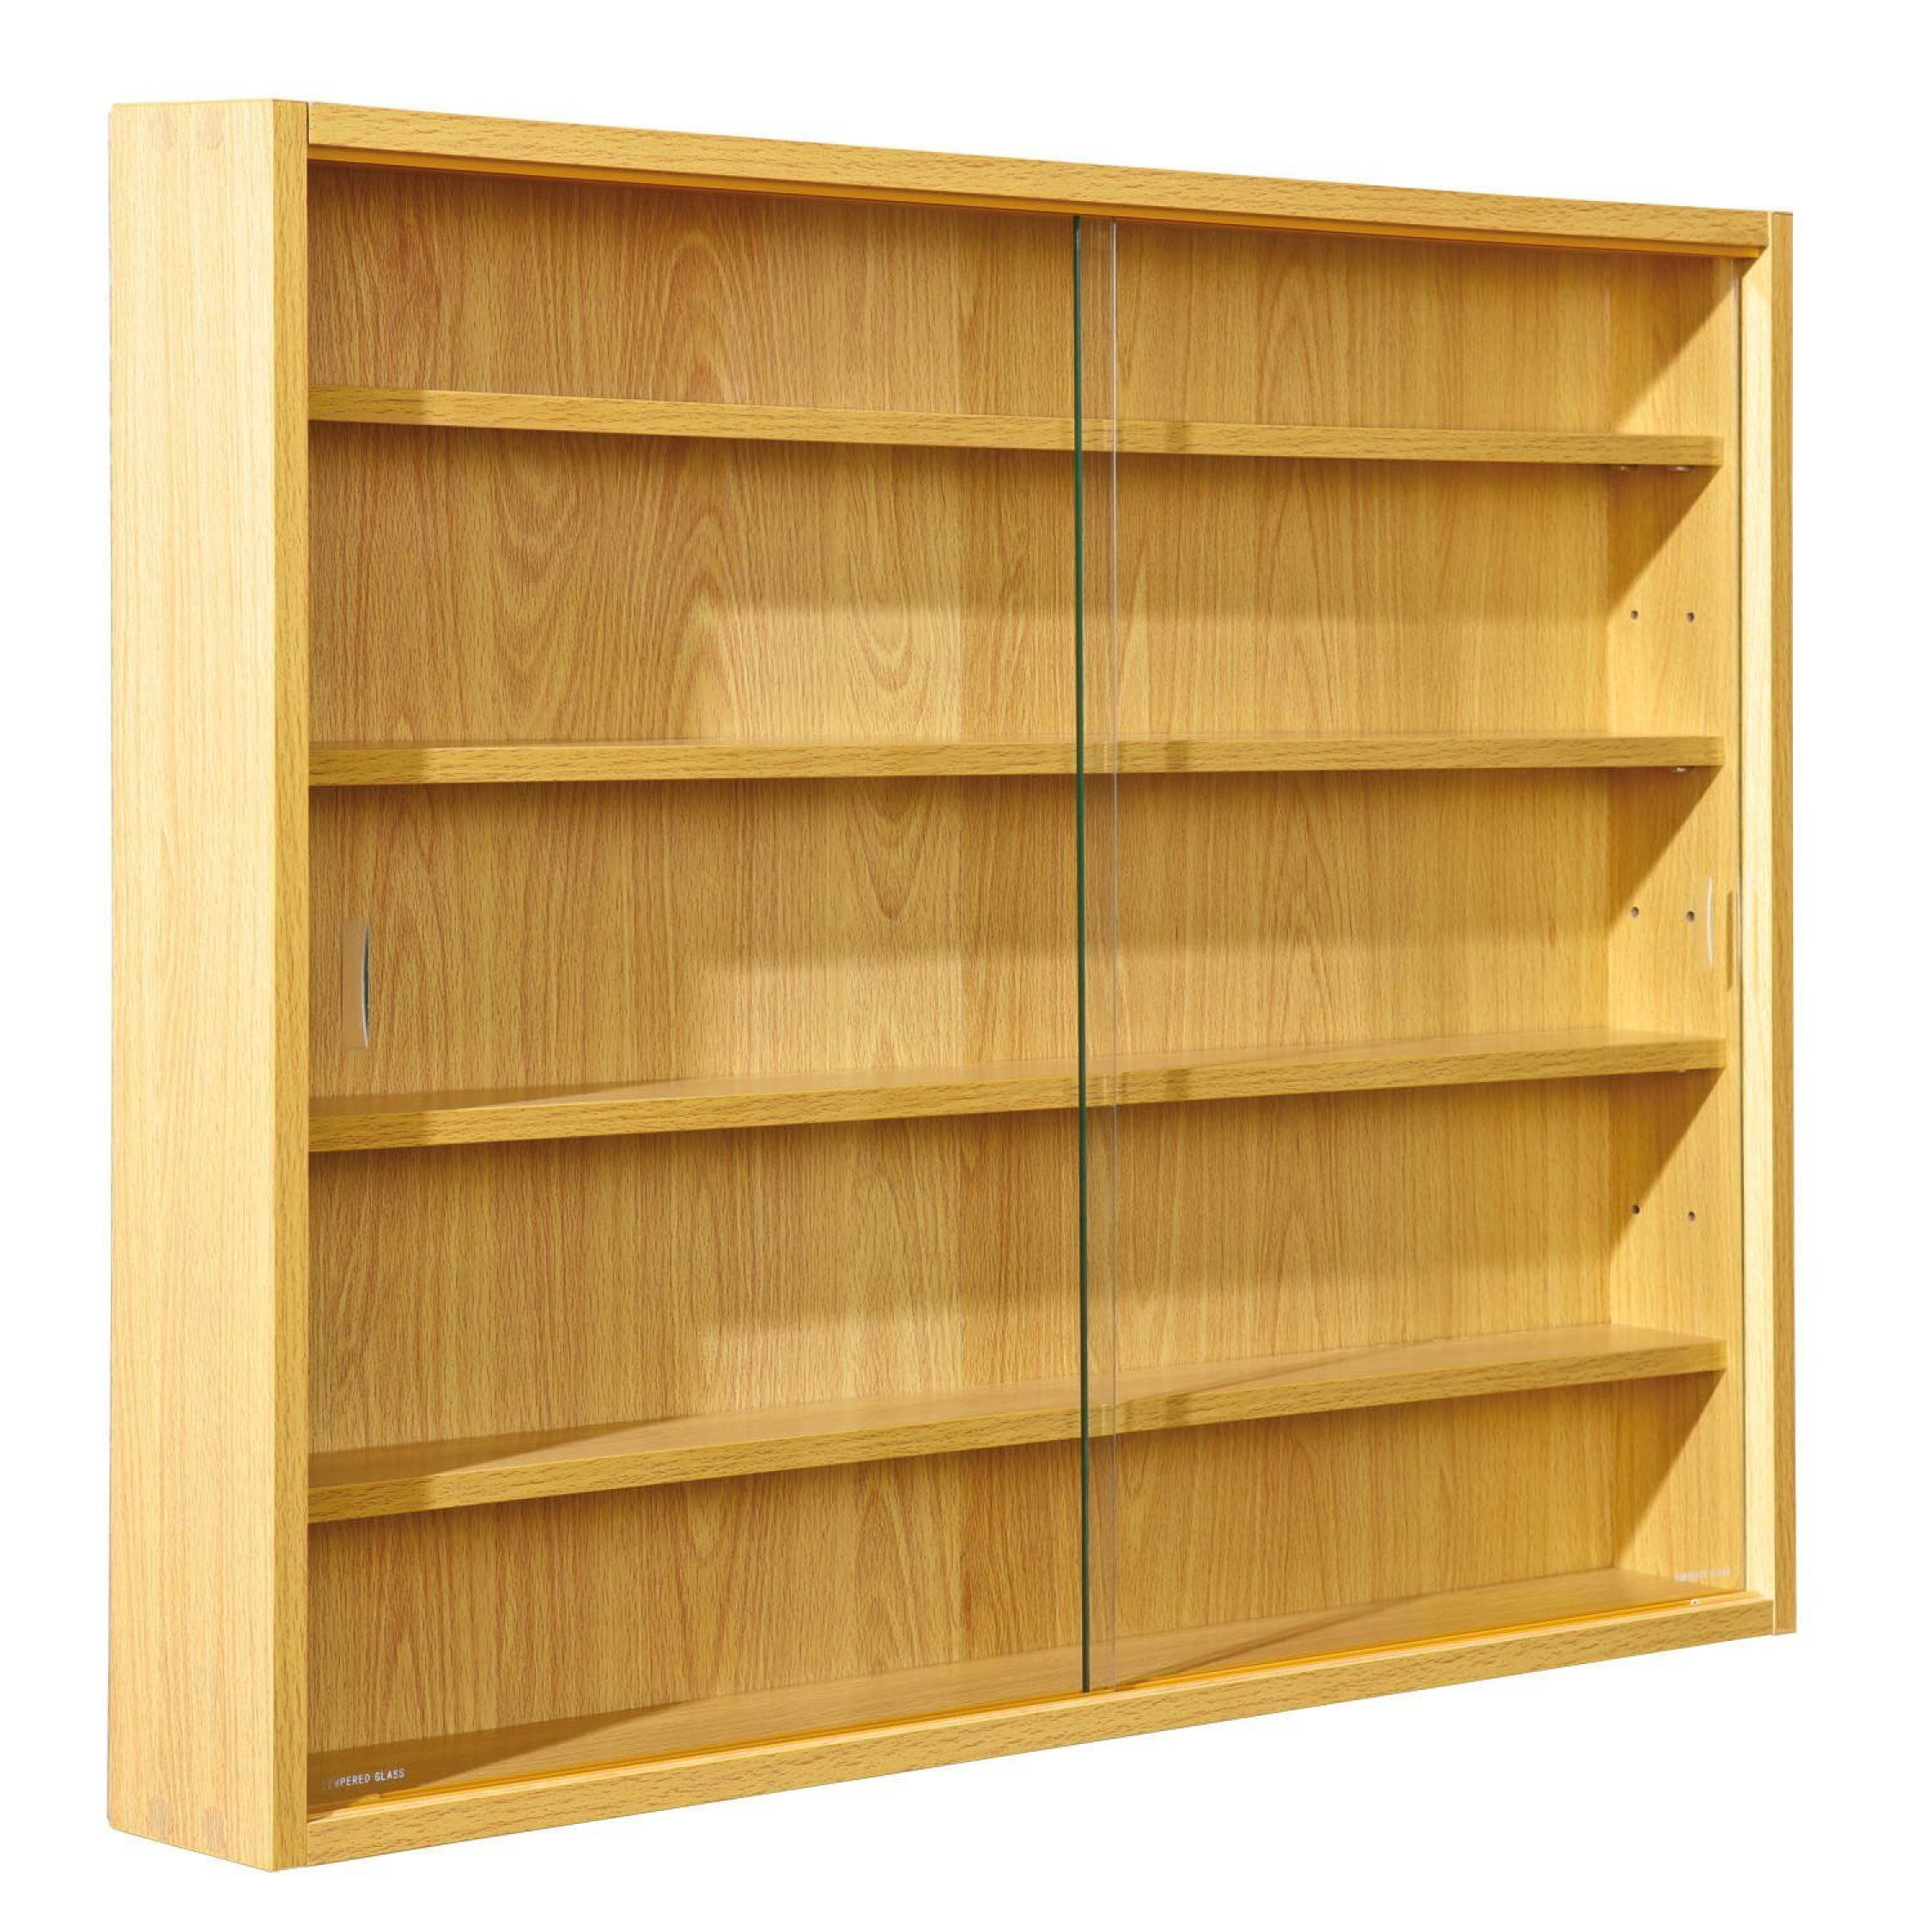 Delightful Image Is Loading Collectors DISPLAY Cabinet  Wooden Glass Shelves Vitrine Collections